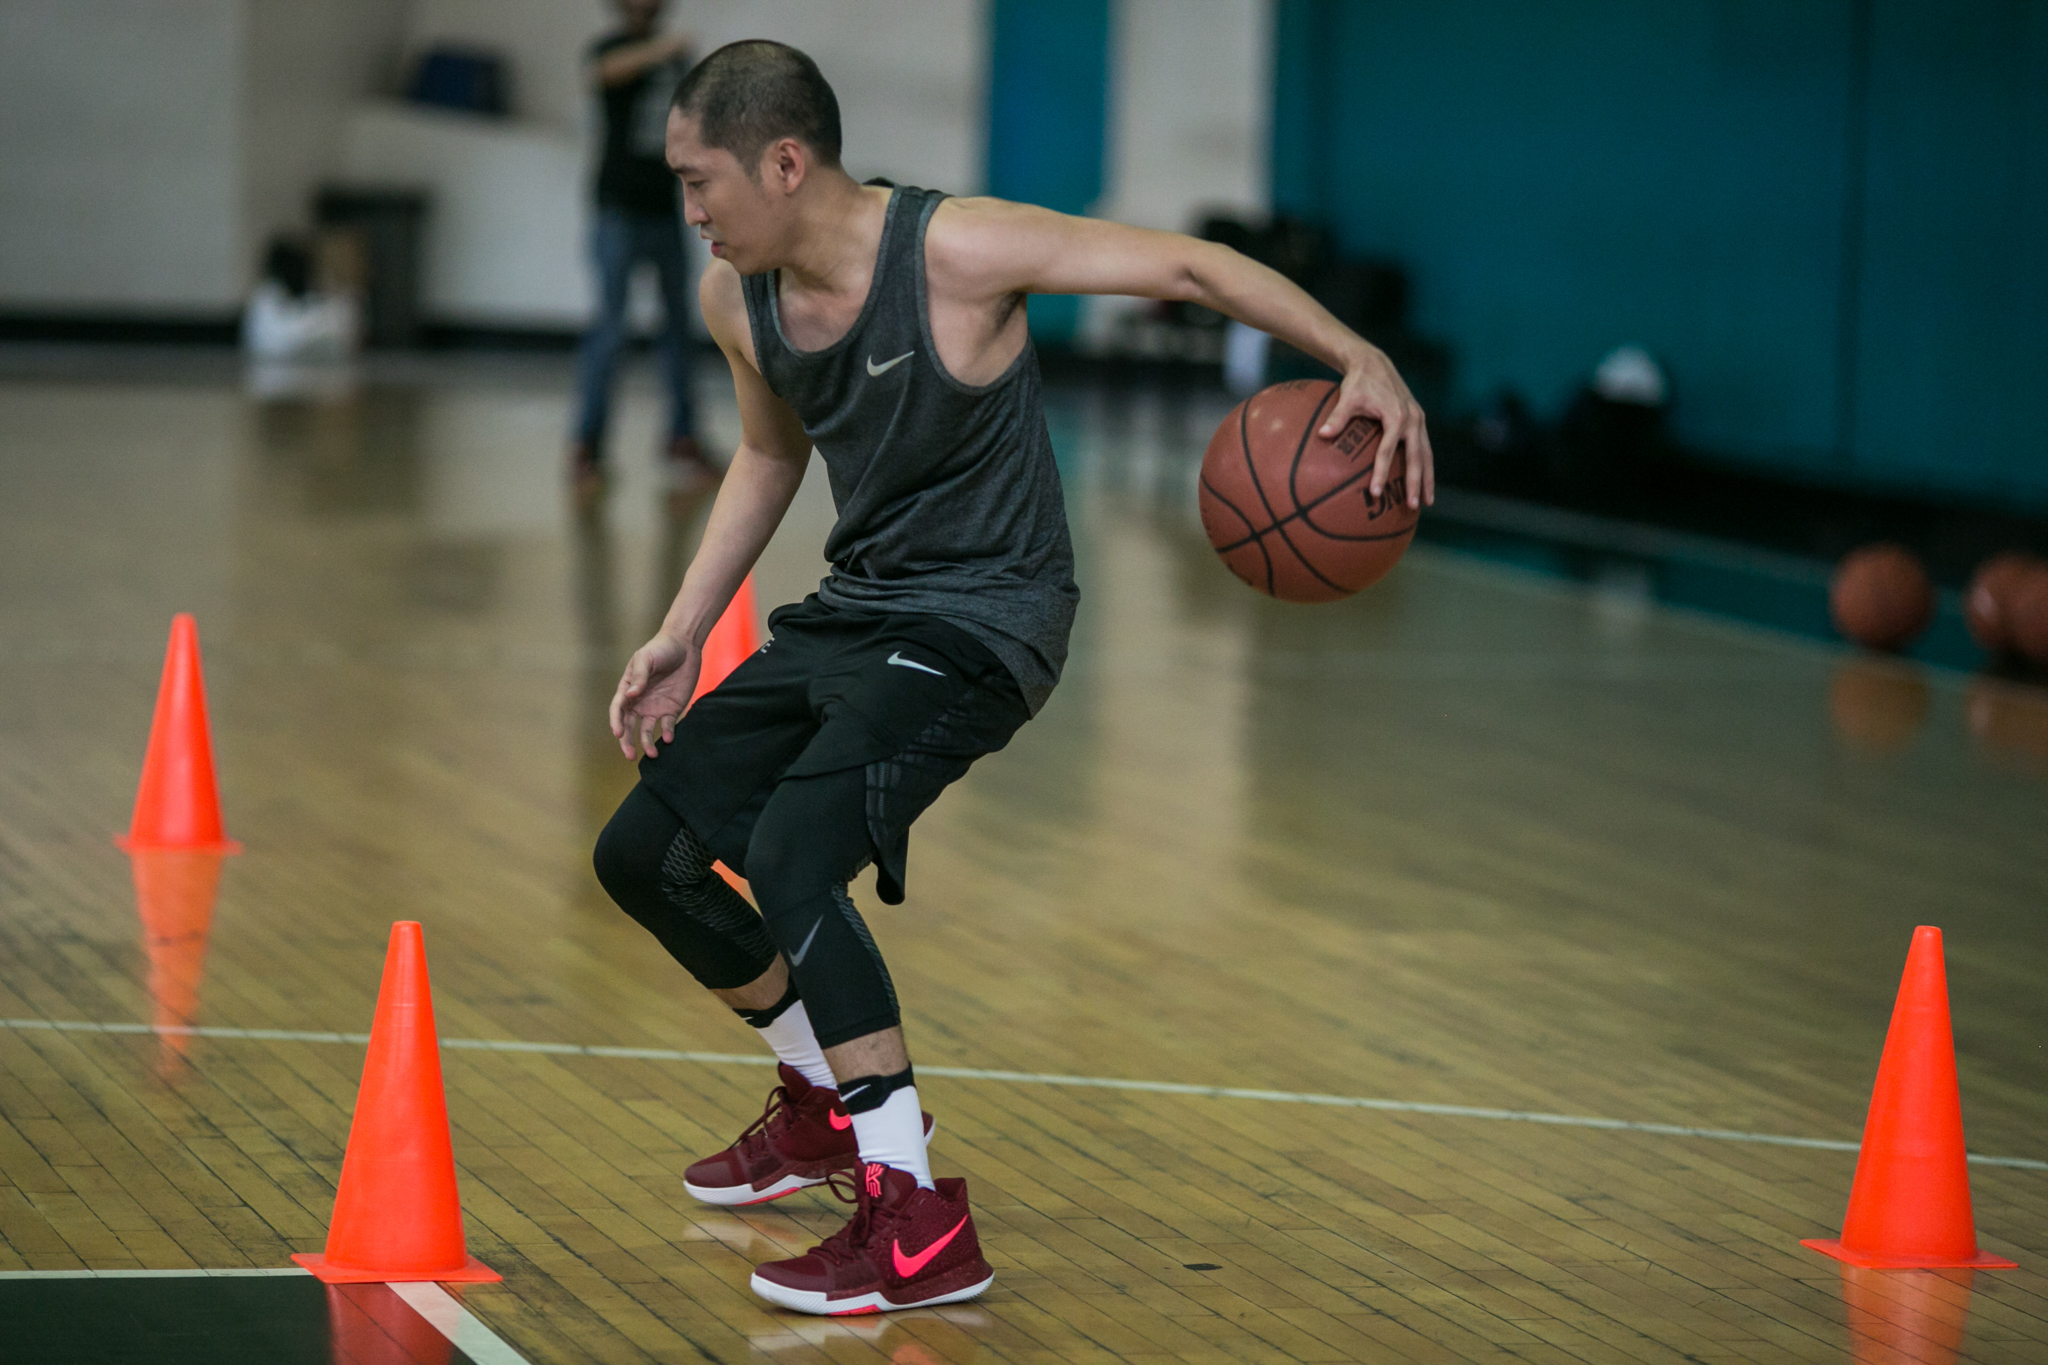 Come out of nowhere: How to become as explosive as Kyrie Irving in 5 weeks  � Lifestyle ...